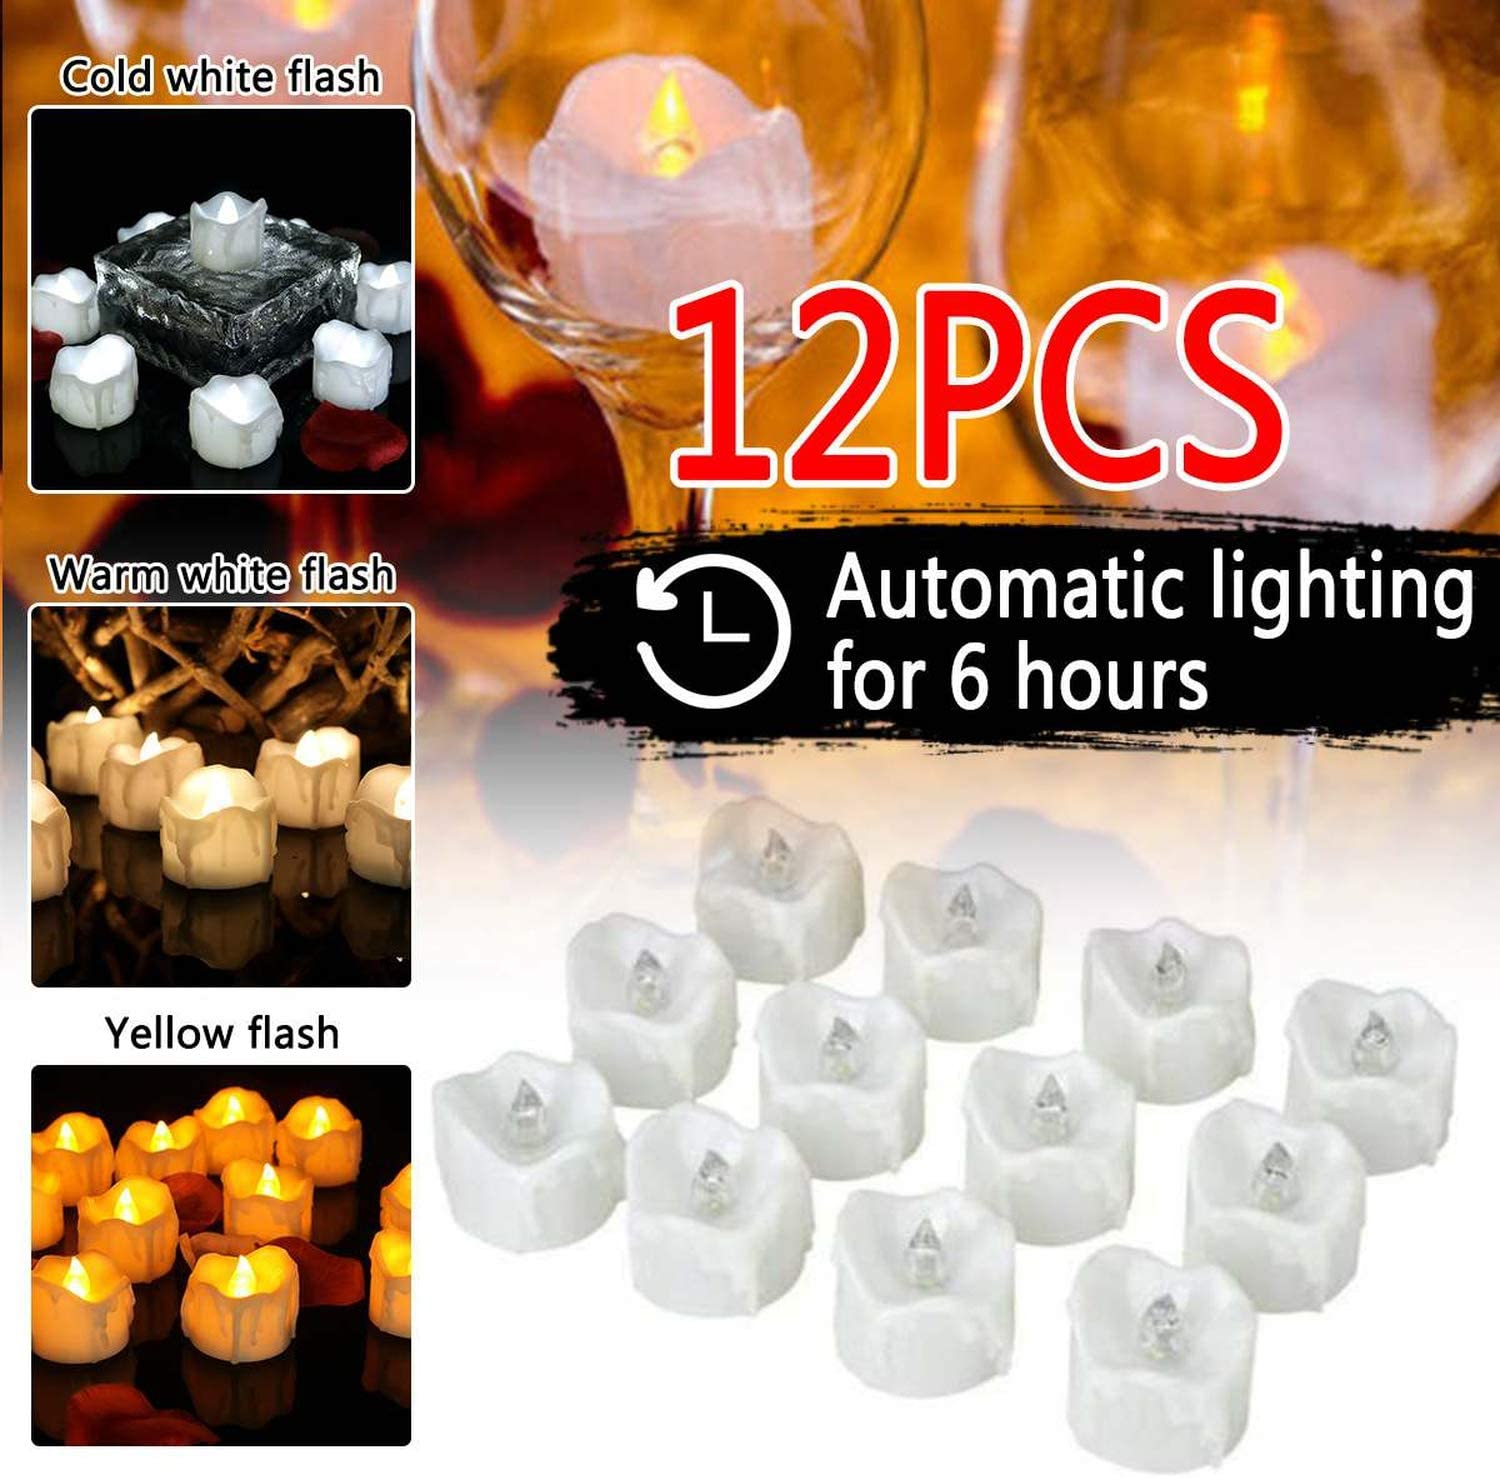 Fostudork Flameless Candles, 12//24Pcs 3Color Timing LED Rechargeable Candle Lamp Flame Flashing Tea Light Home Wedding Birthday Party Decor Timer Tealight,12Pcs Warm White,